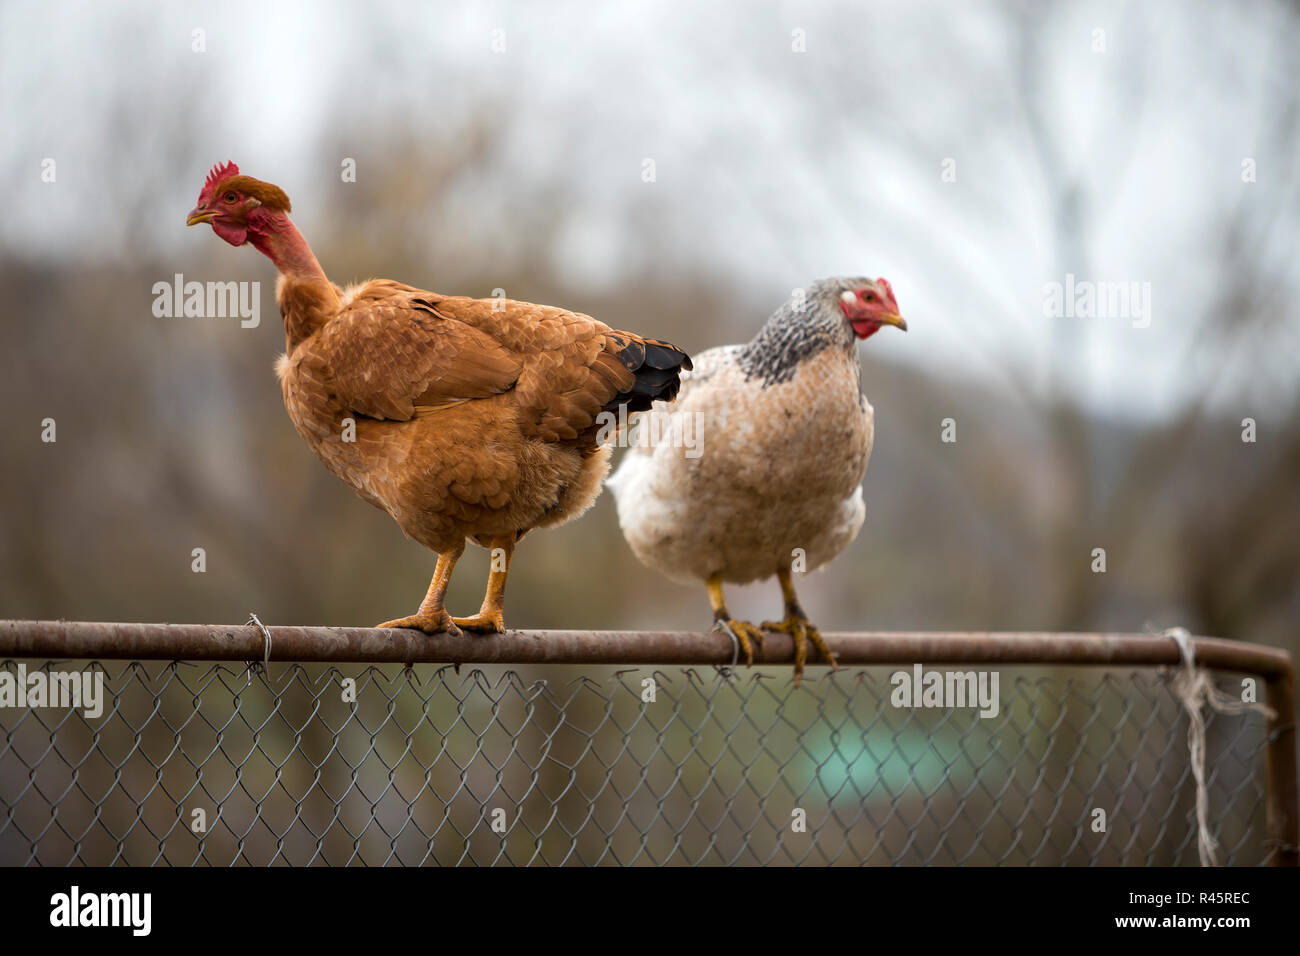 Big red brown hens outdoors sitting on wire fence on bright sunny day on blurred colorful summer copy space background. Farming of poultry, chicken me Stock Photo